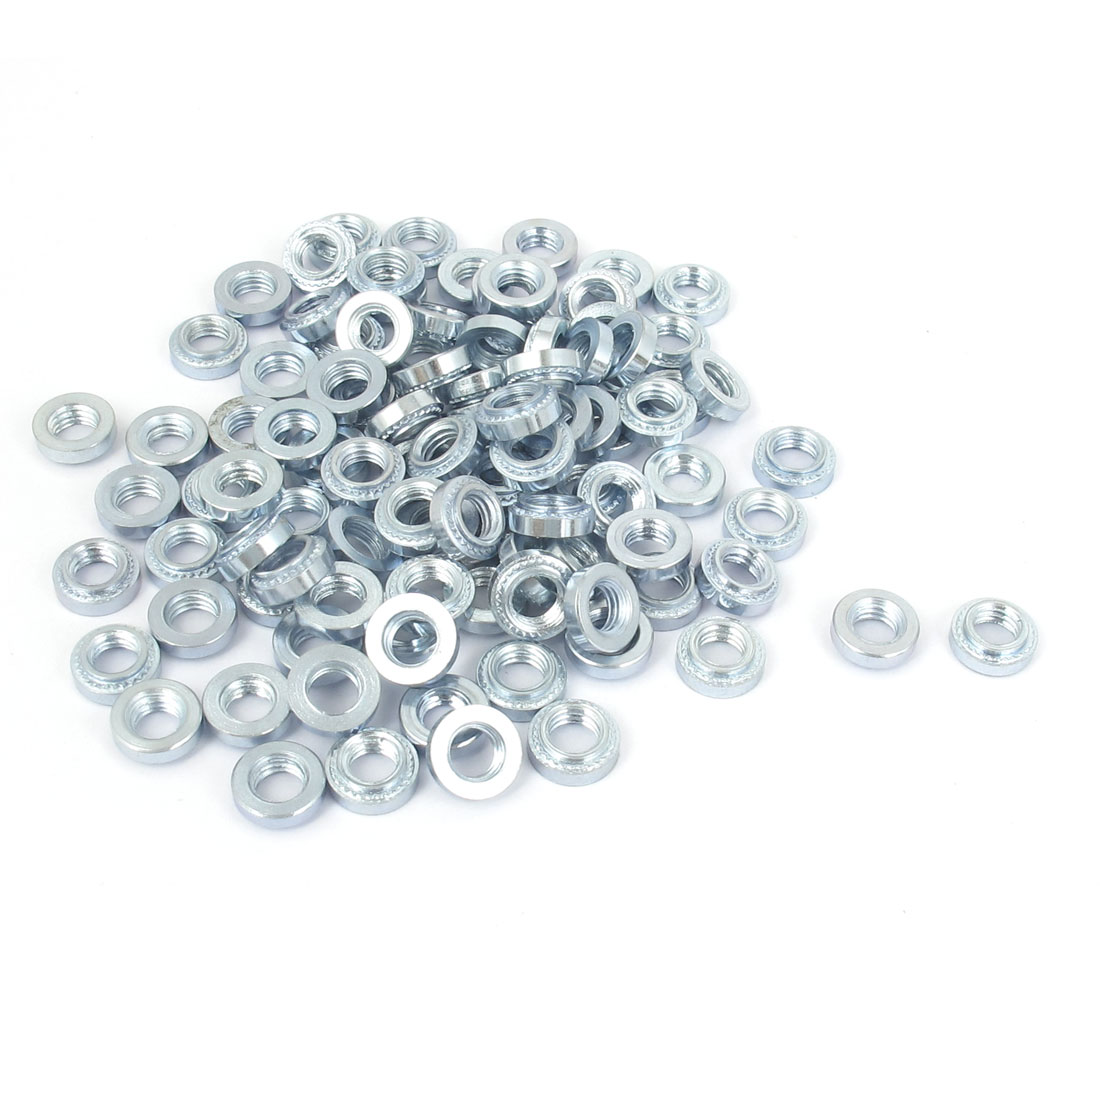 M5 Zinc Plated Self Clinching Rivet Nut Fastener 100pcs for 1mm Thin Plates